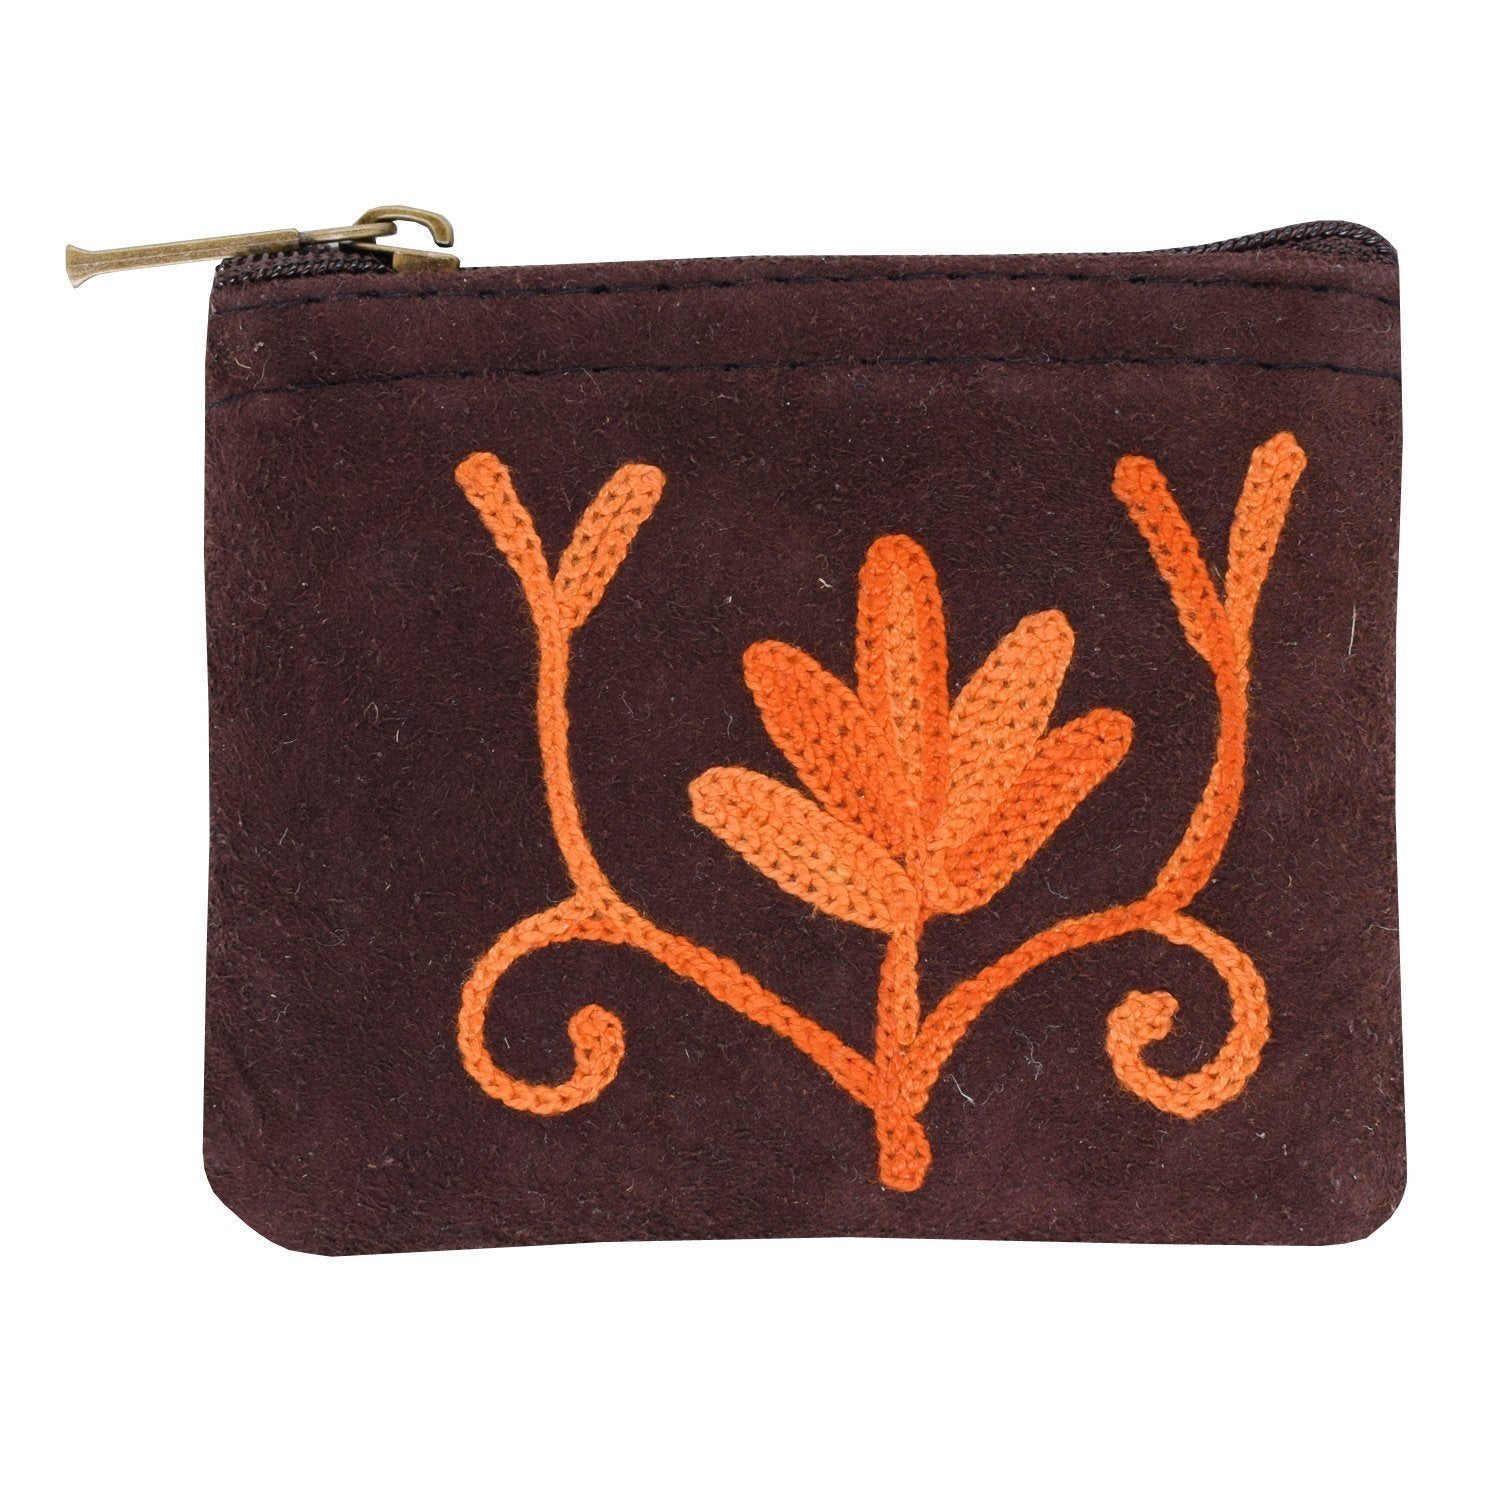 Kashmiri Crewel Embroidery Suede Coin Purse - Bagaholics Gift